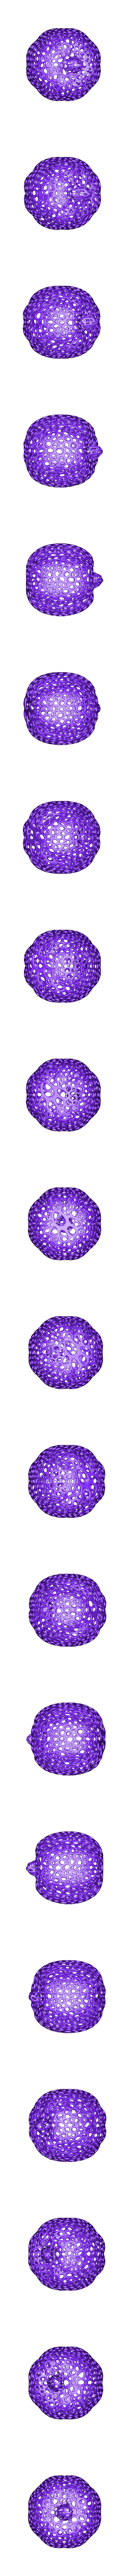 pumpkin_xyz_-_Voronoi_-_coarse.STL Download free STL file Pumpkin - Voronoi Style • 3D printable object, Numbmond